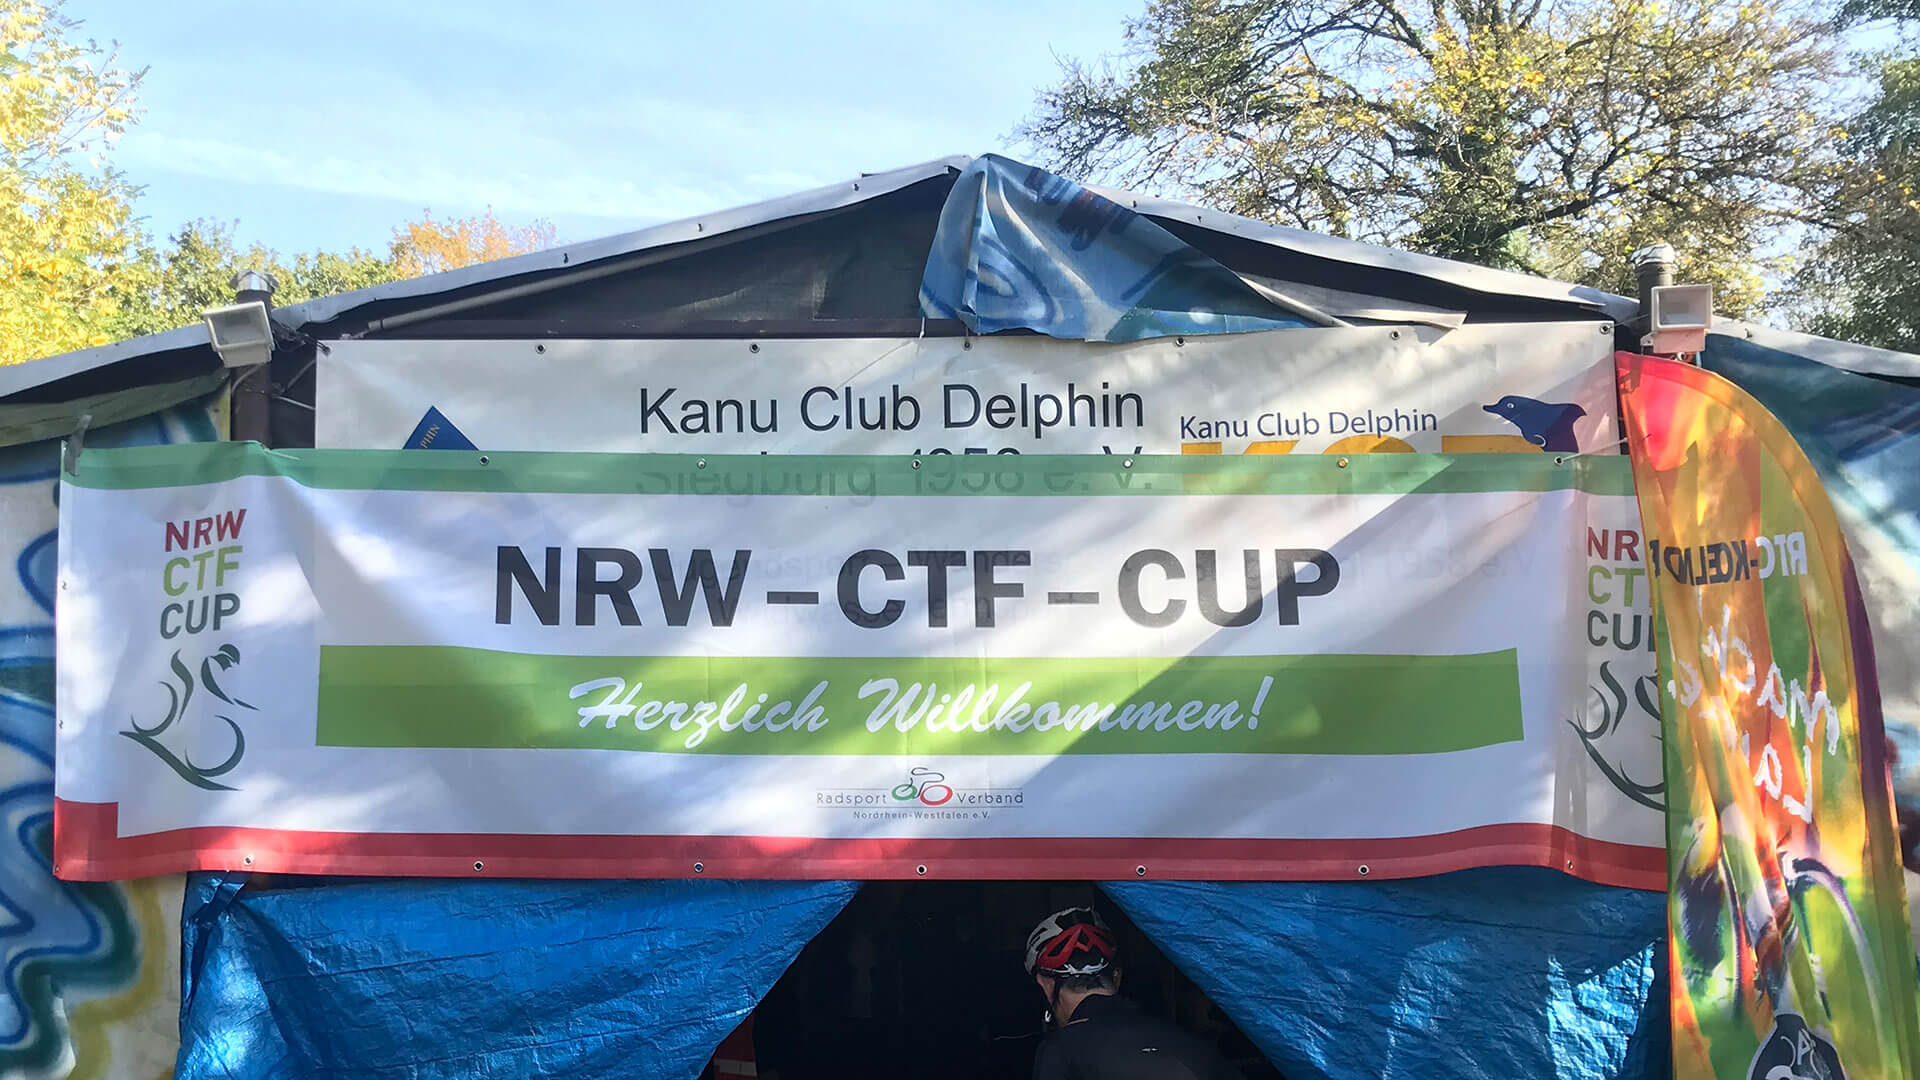 NRW CTF Cup Welcome